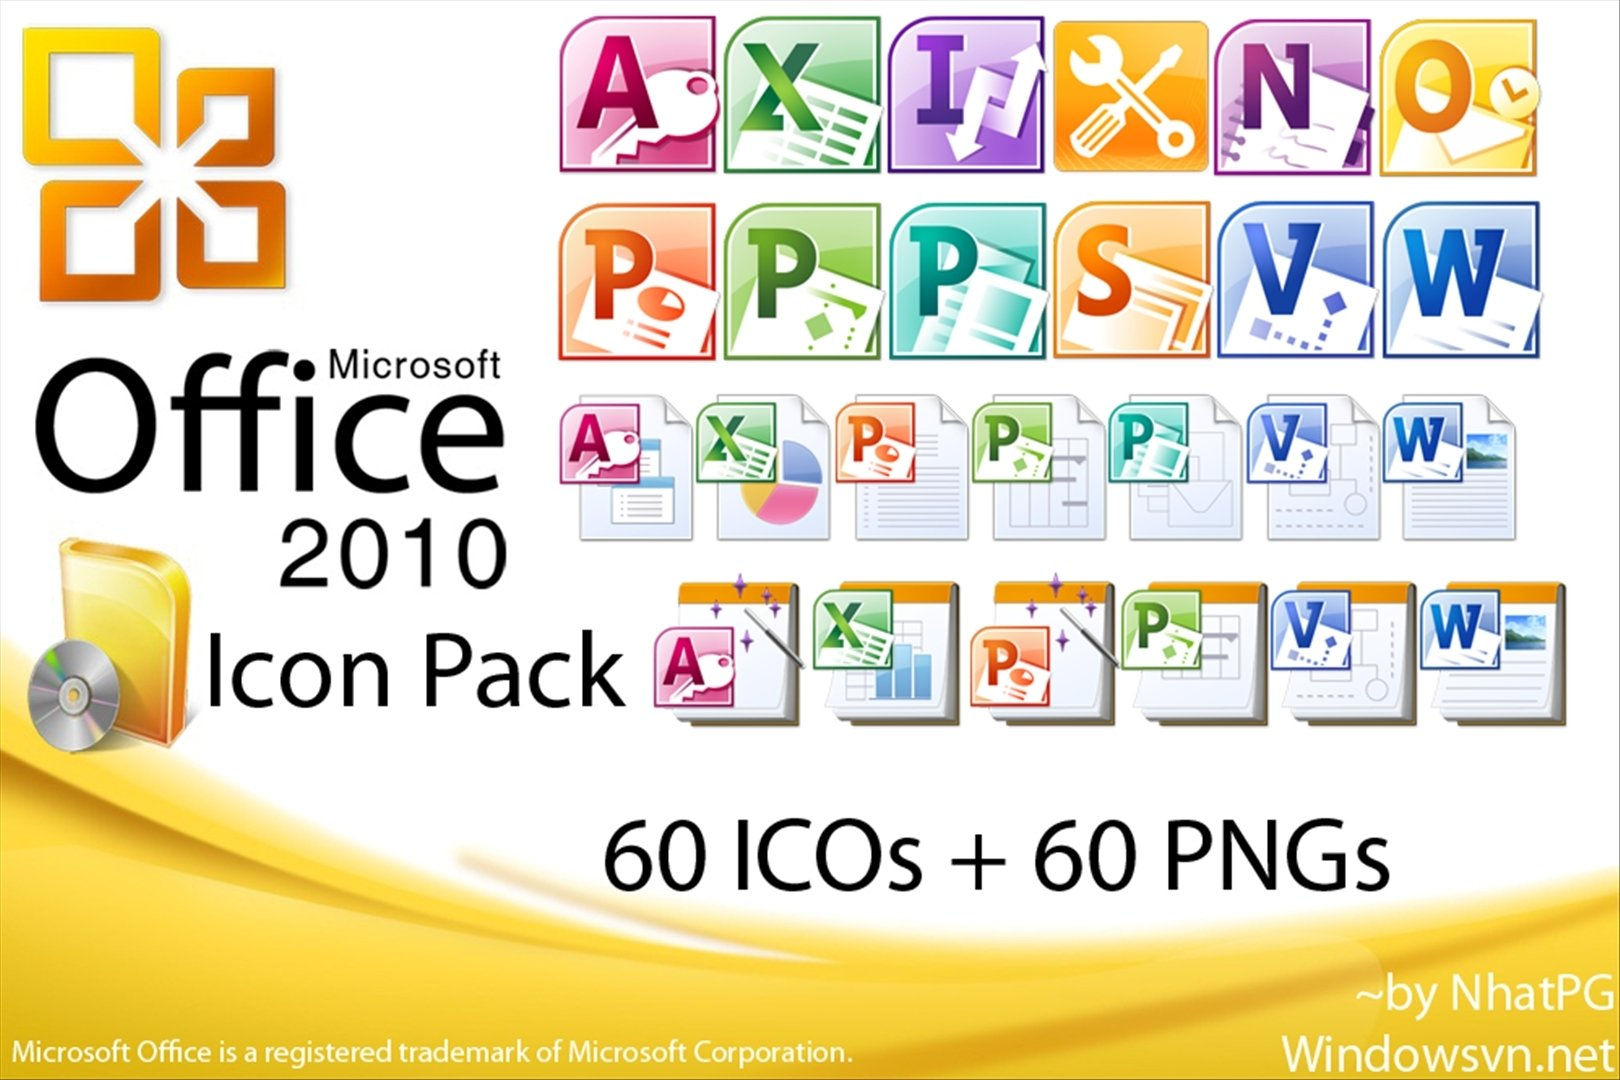 download microsoft office 2010 iconpack free. Black Bedroom Furniture Sets. Home Design Ideas